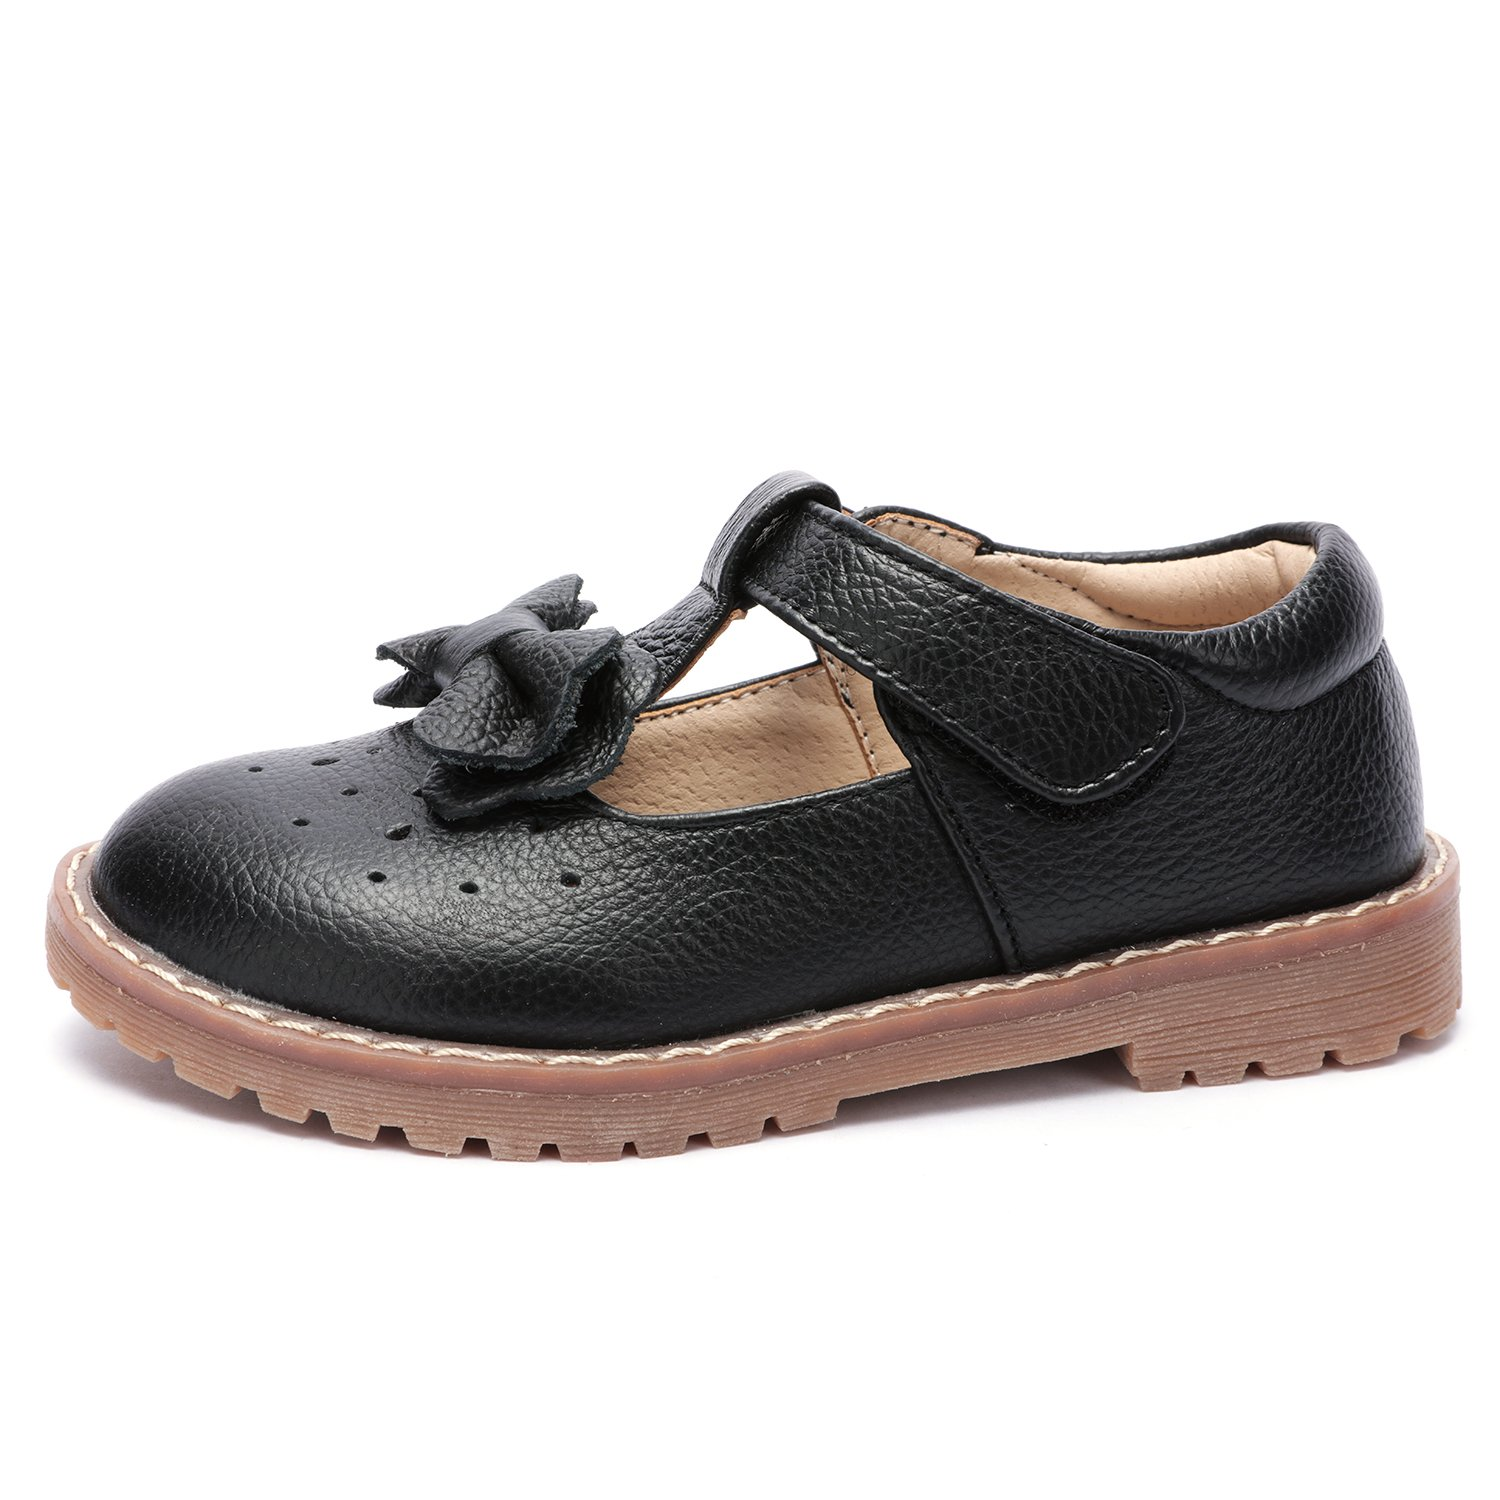 UBELLA Kids Toddler Girl's Retro T-Bar Princess Dress Shoes Leather Strap Mary Jane Flat Oxford Shoes by UBELLA (Image #2)